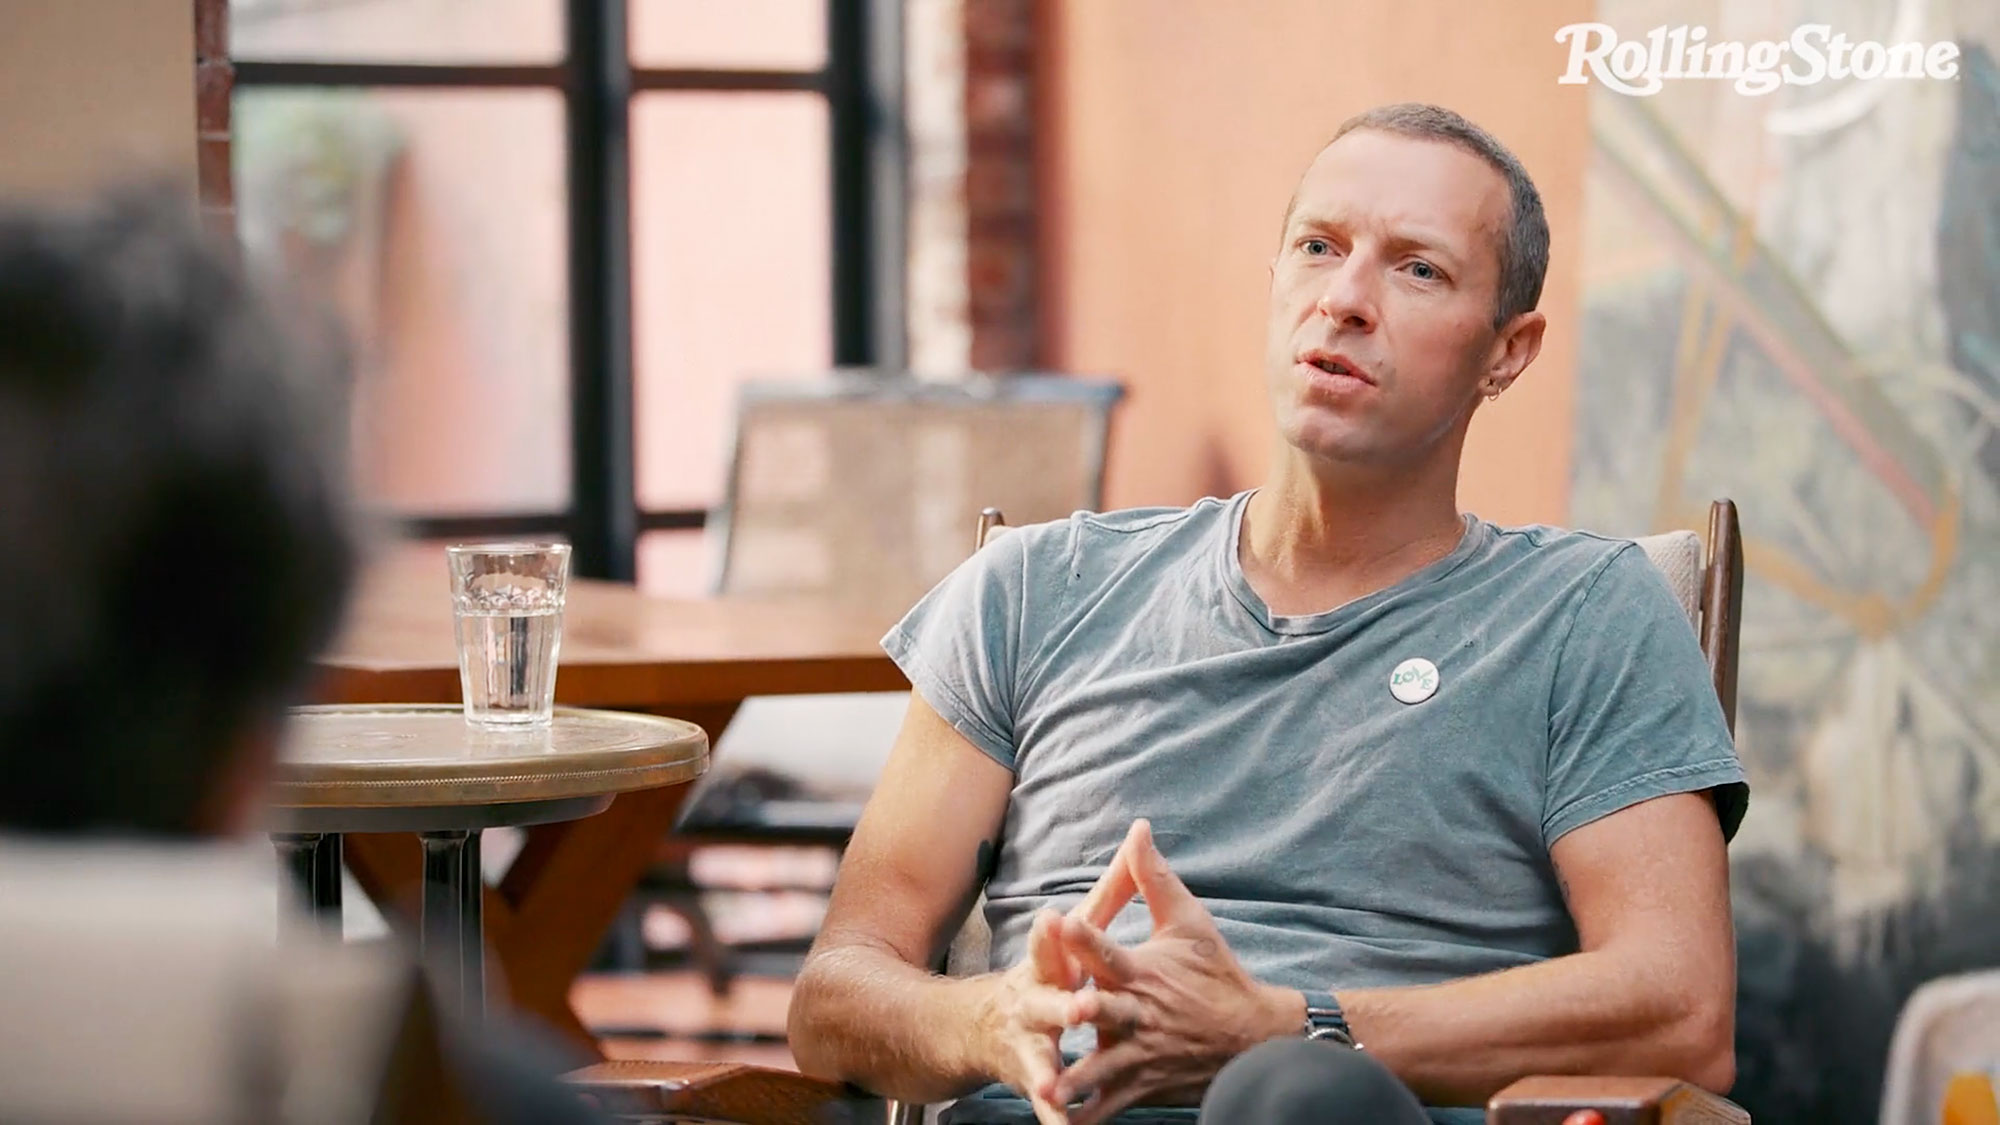 Chris Martin Admits He Was Very Homophobic as a Teen and Once Questioned His Sexuality in Rolling Stone Interview